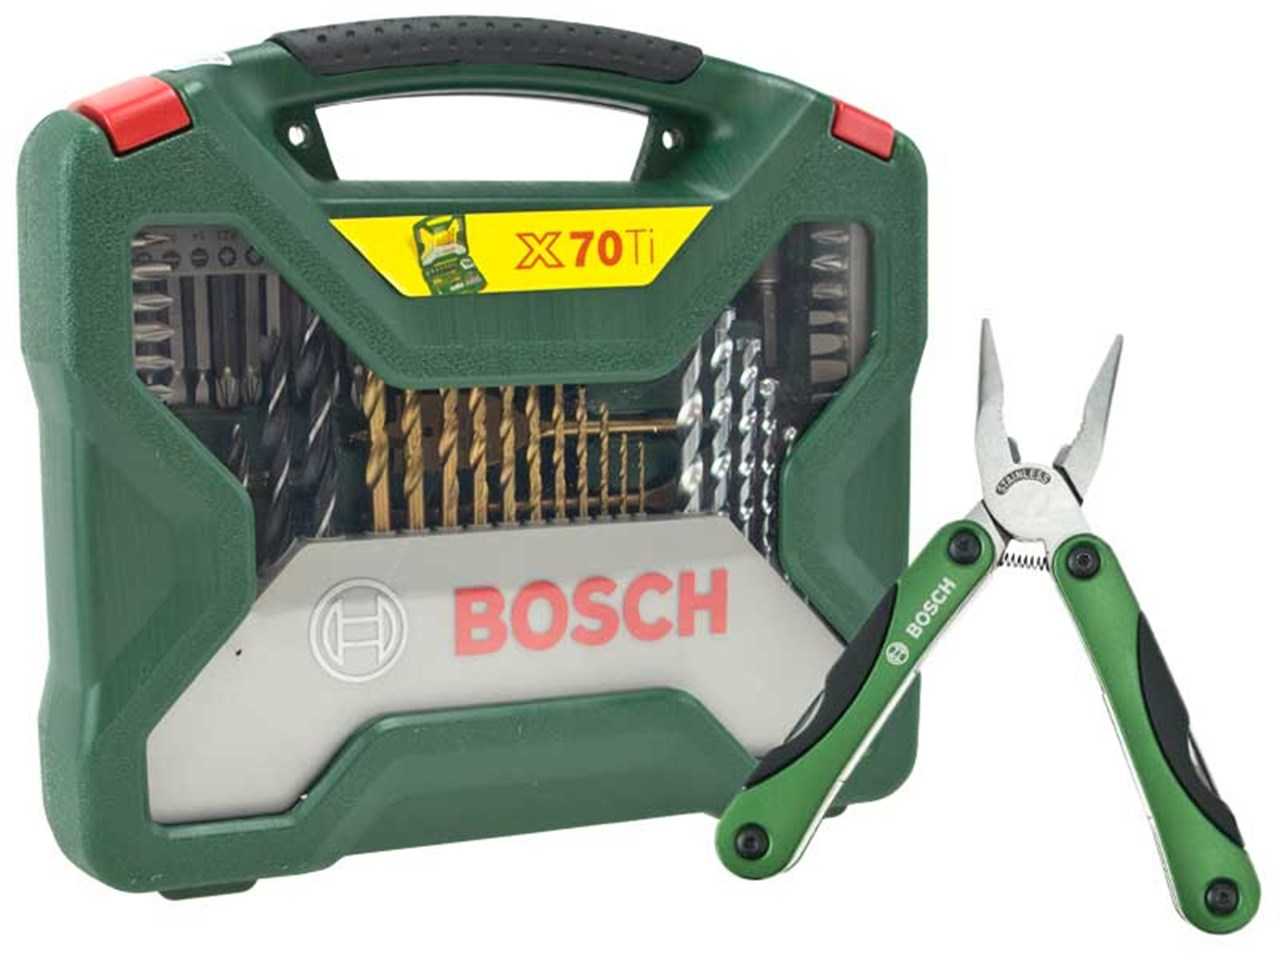 bosch green 2607017198 70 piece x line drill driver and multi tool set. Black Bedroom Furniture Sets. Home Design Ideas